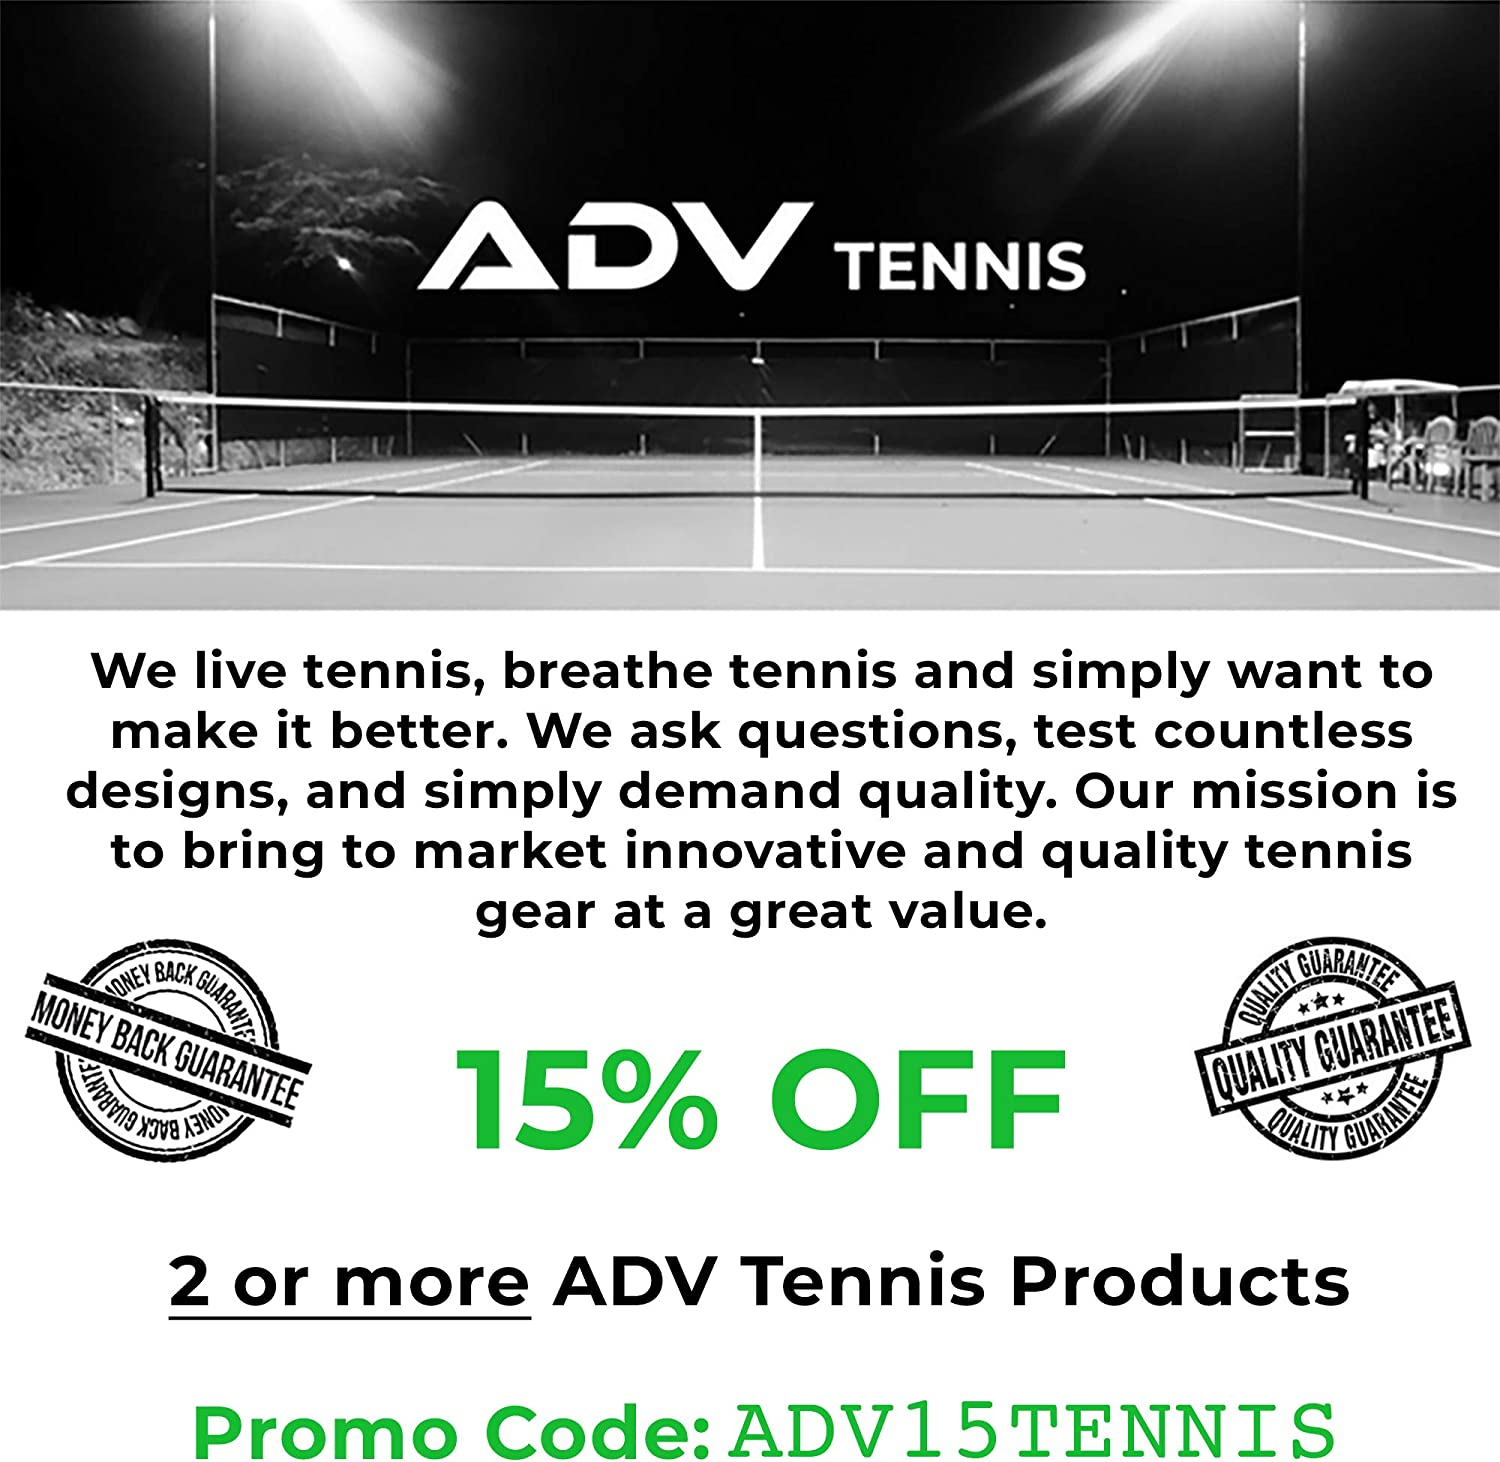 ADV Tennis Vibration Dampener - Set of 3 - Ultimate Shock Absorbers for Racket and Strings - Premium Quality, Durable, and 100% Reliable - Newest Technology (Black) : Sports & Outdoors